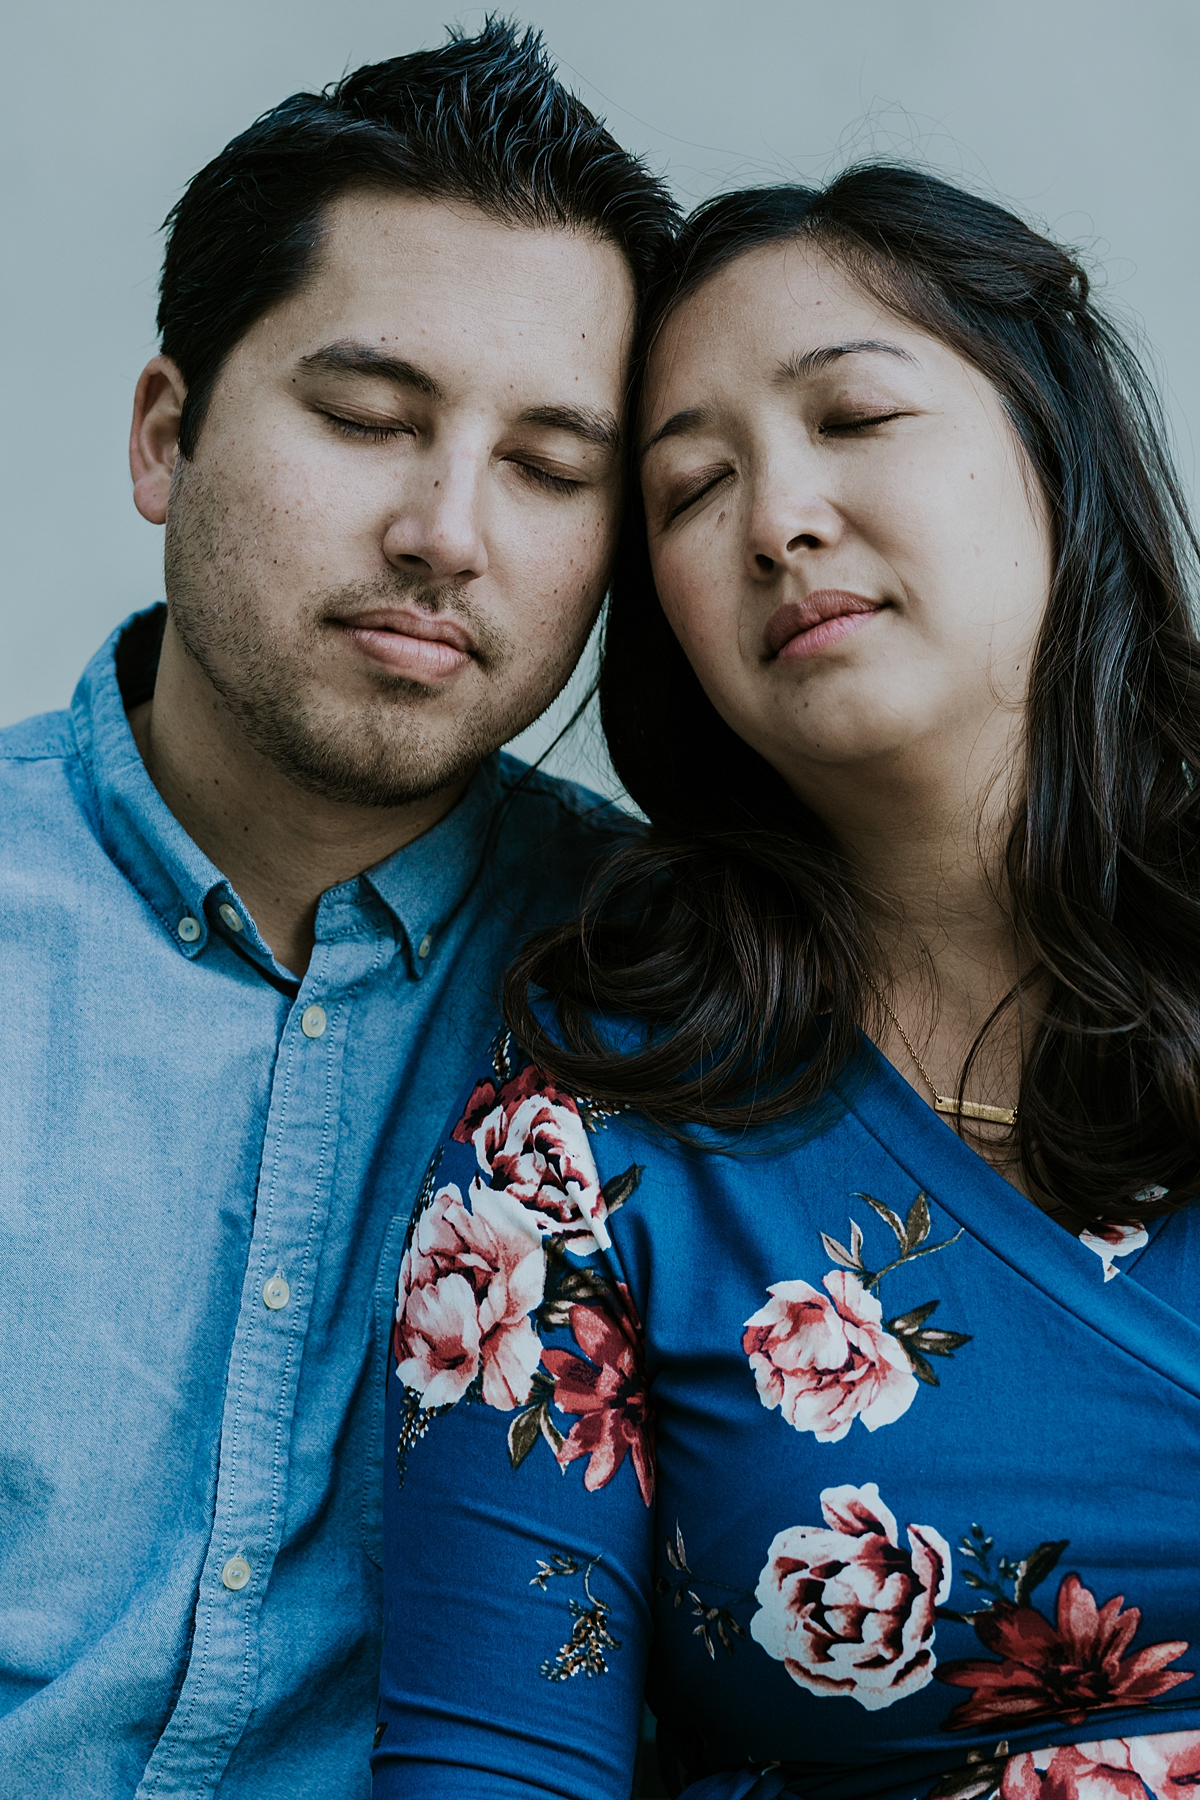 Orange County family photographer. Relaxed portrait photo of couple sitting with their eyes closed during maternity photo shoot at Noguchi Garden Costa Mesa